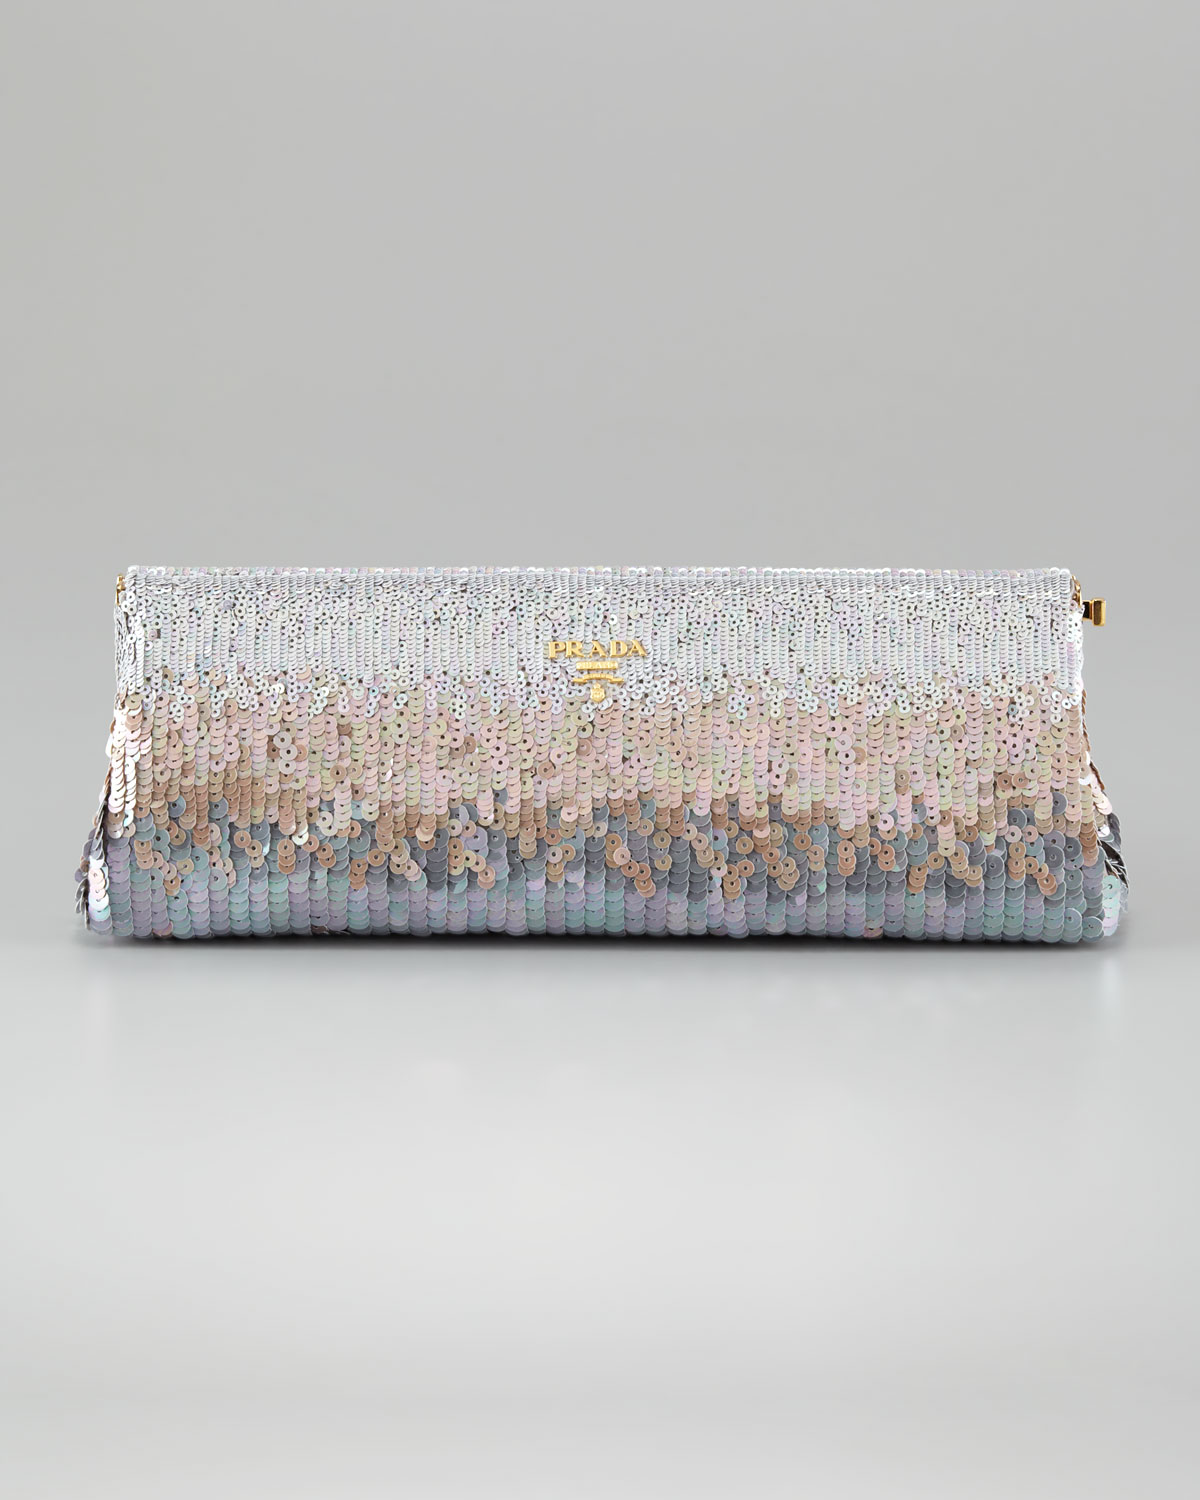 how much is the prada saffiano - prada sequin clutch, prada red handbag